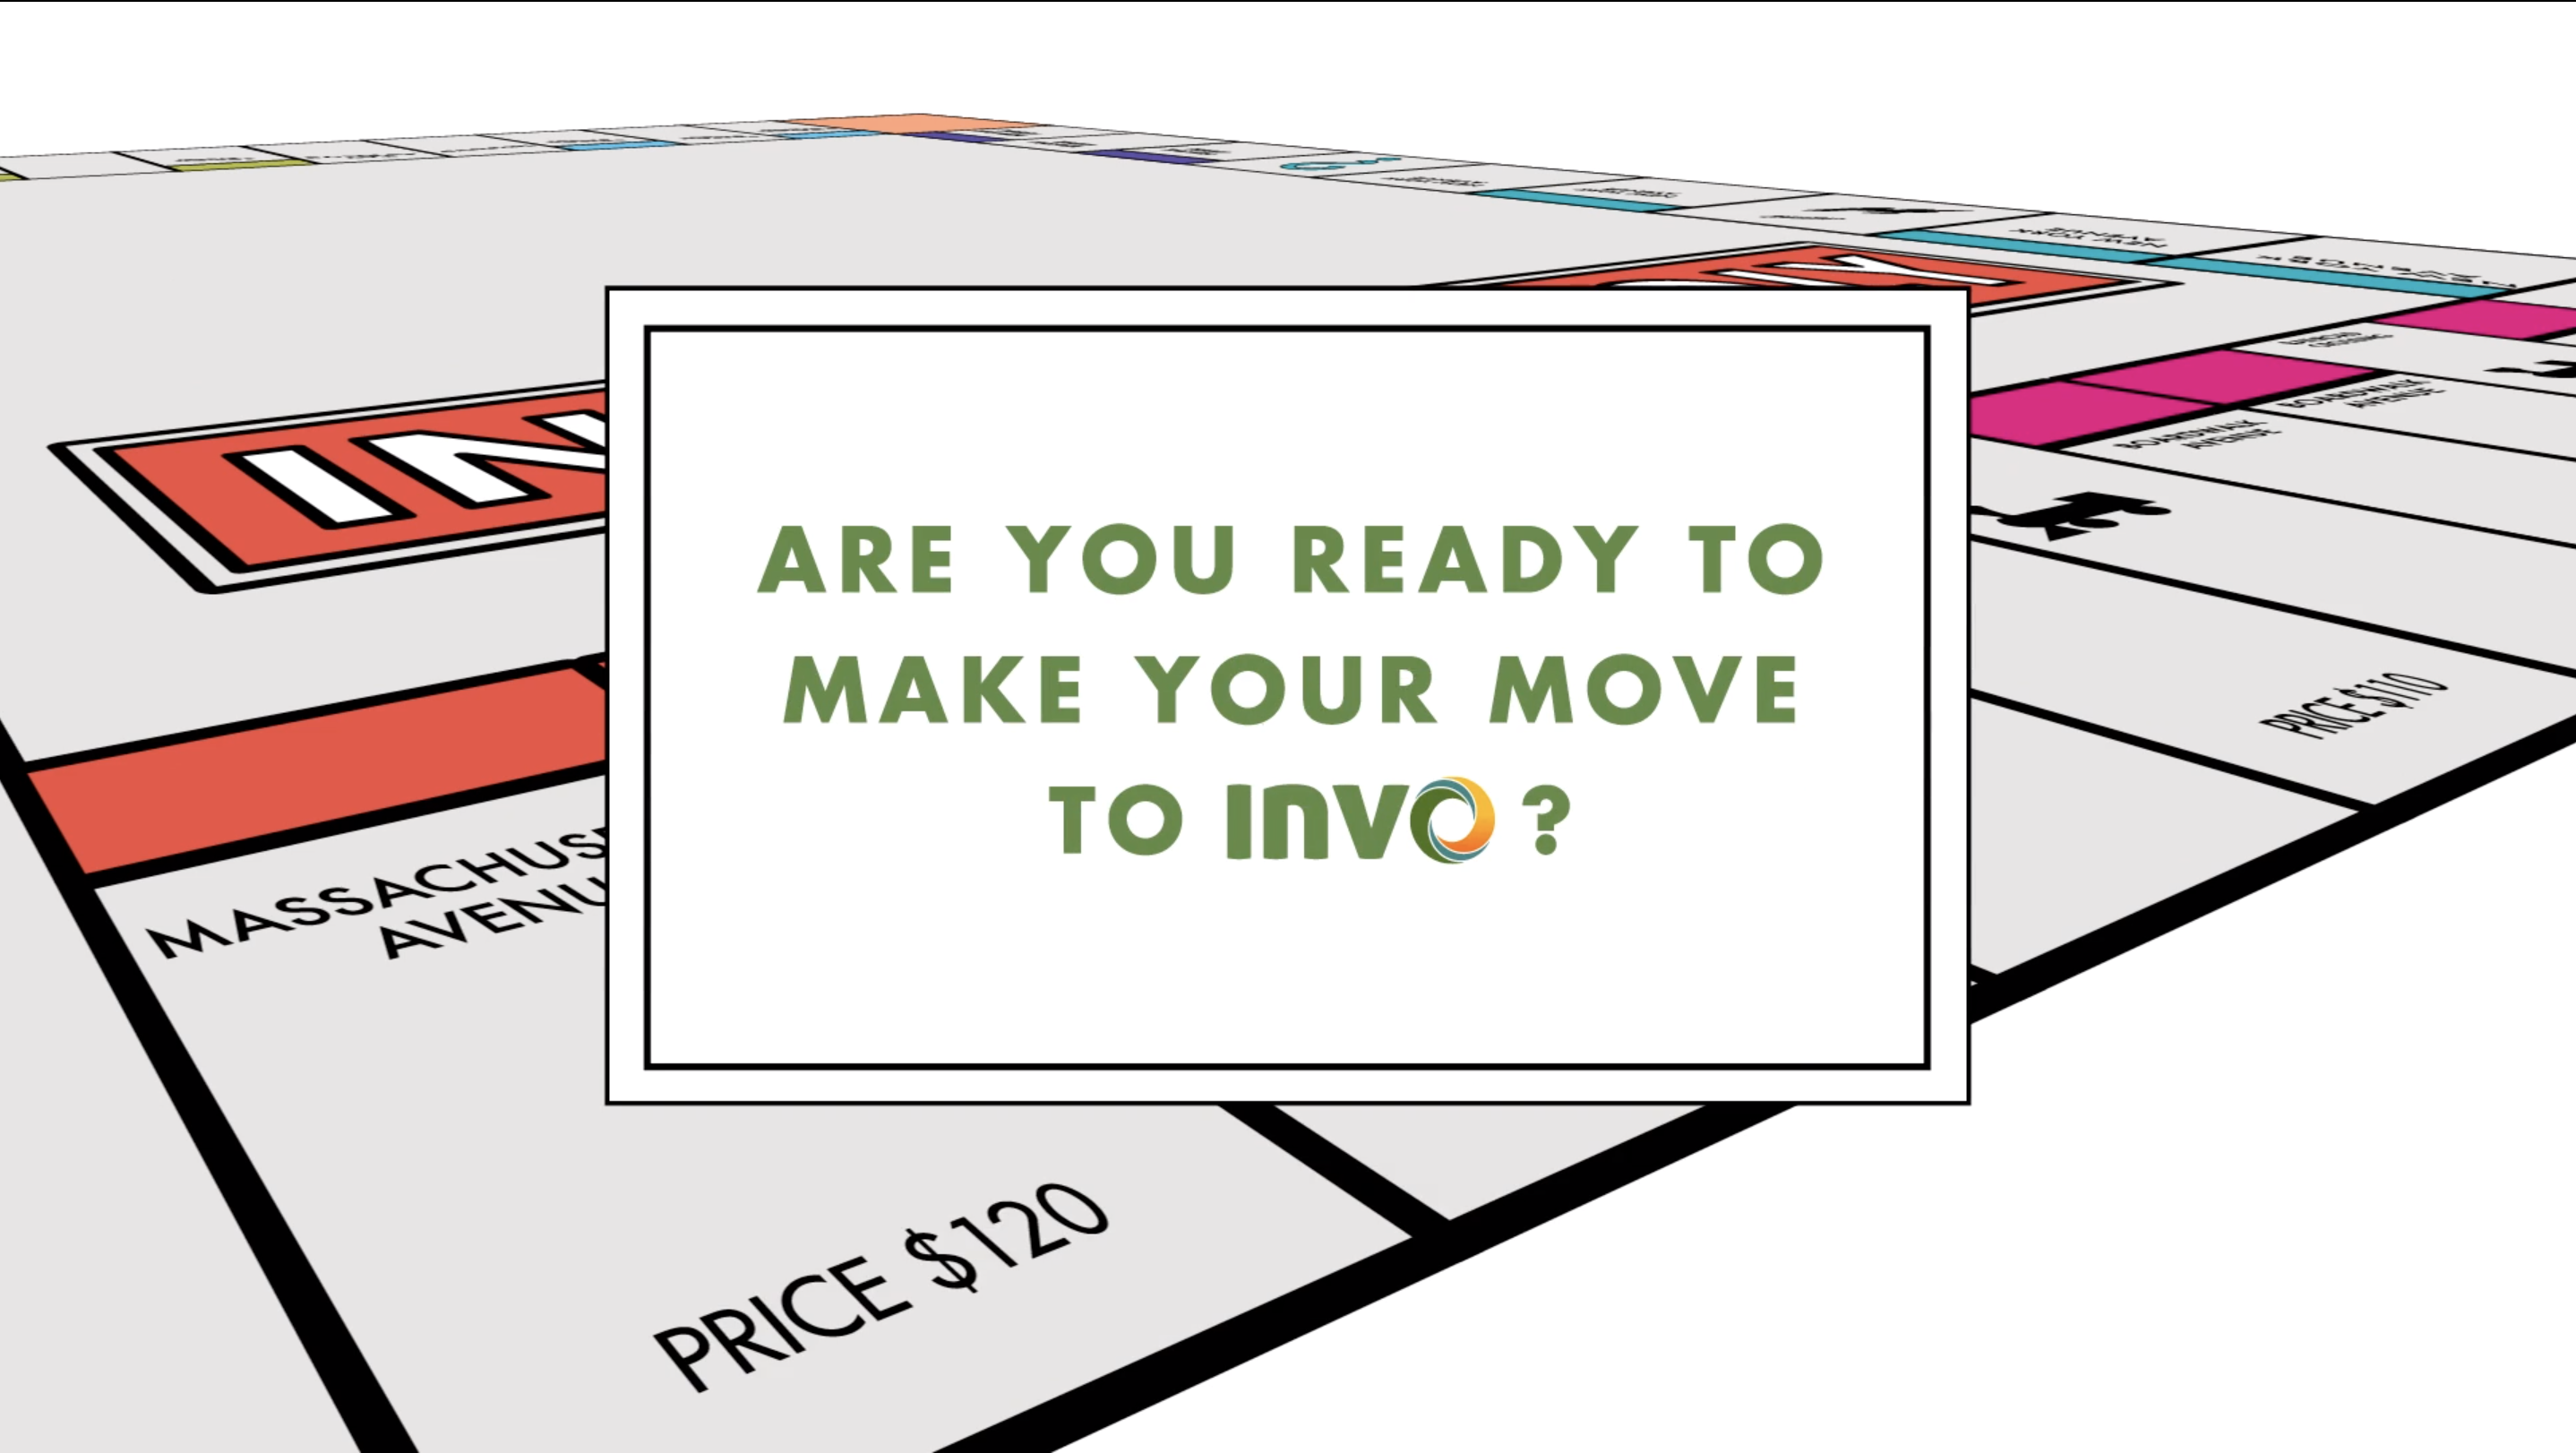 Are You ready to Make Your Move to INVO?